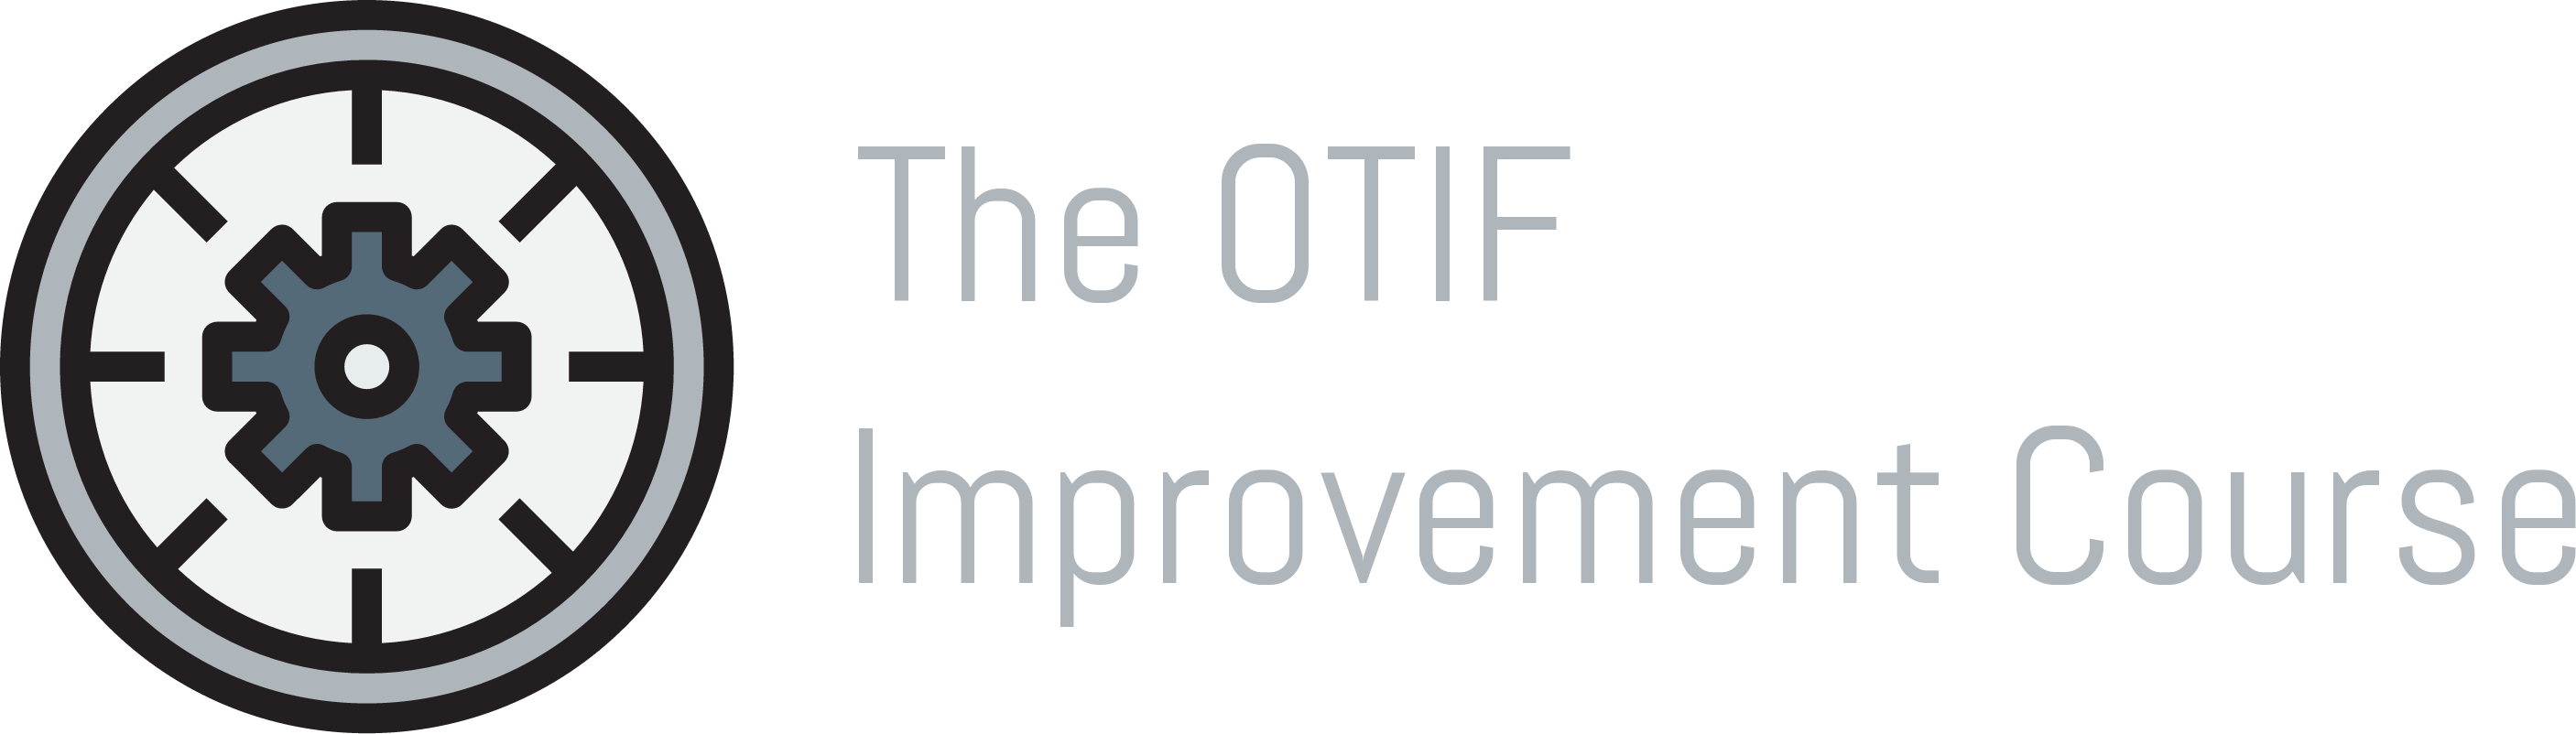 OTIF Improvement Course